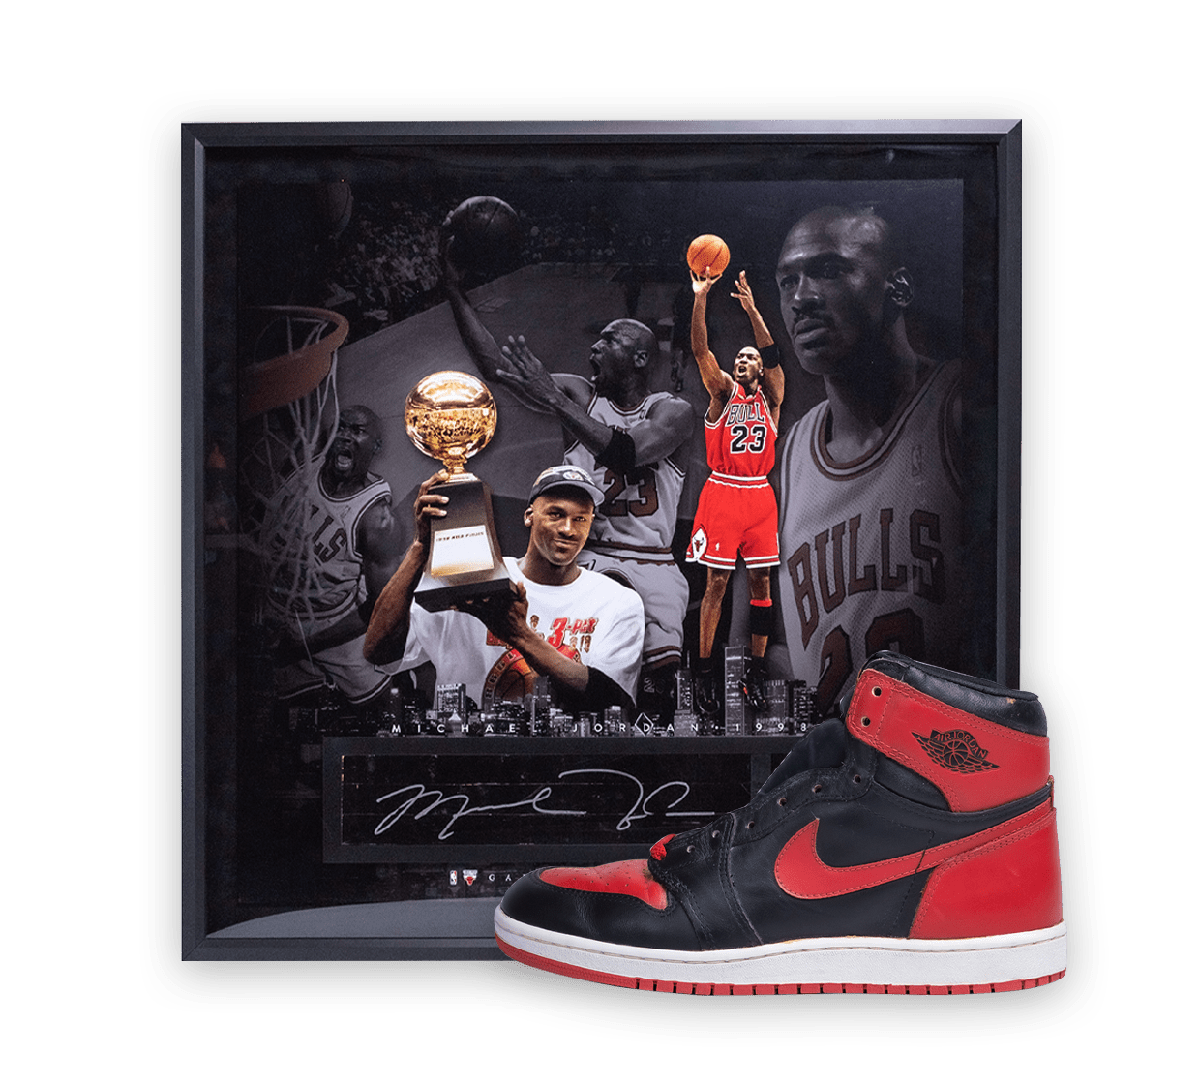 Signed Nike AJ1 Bred 1985 and Floor Image